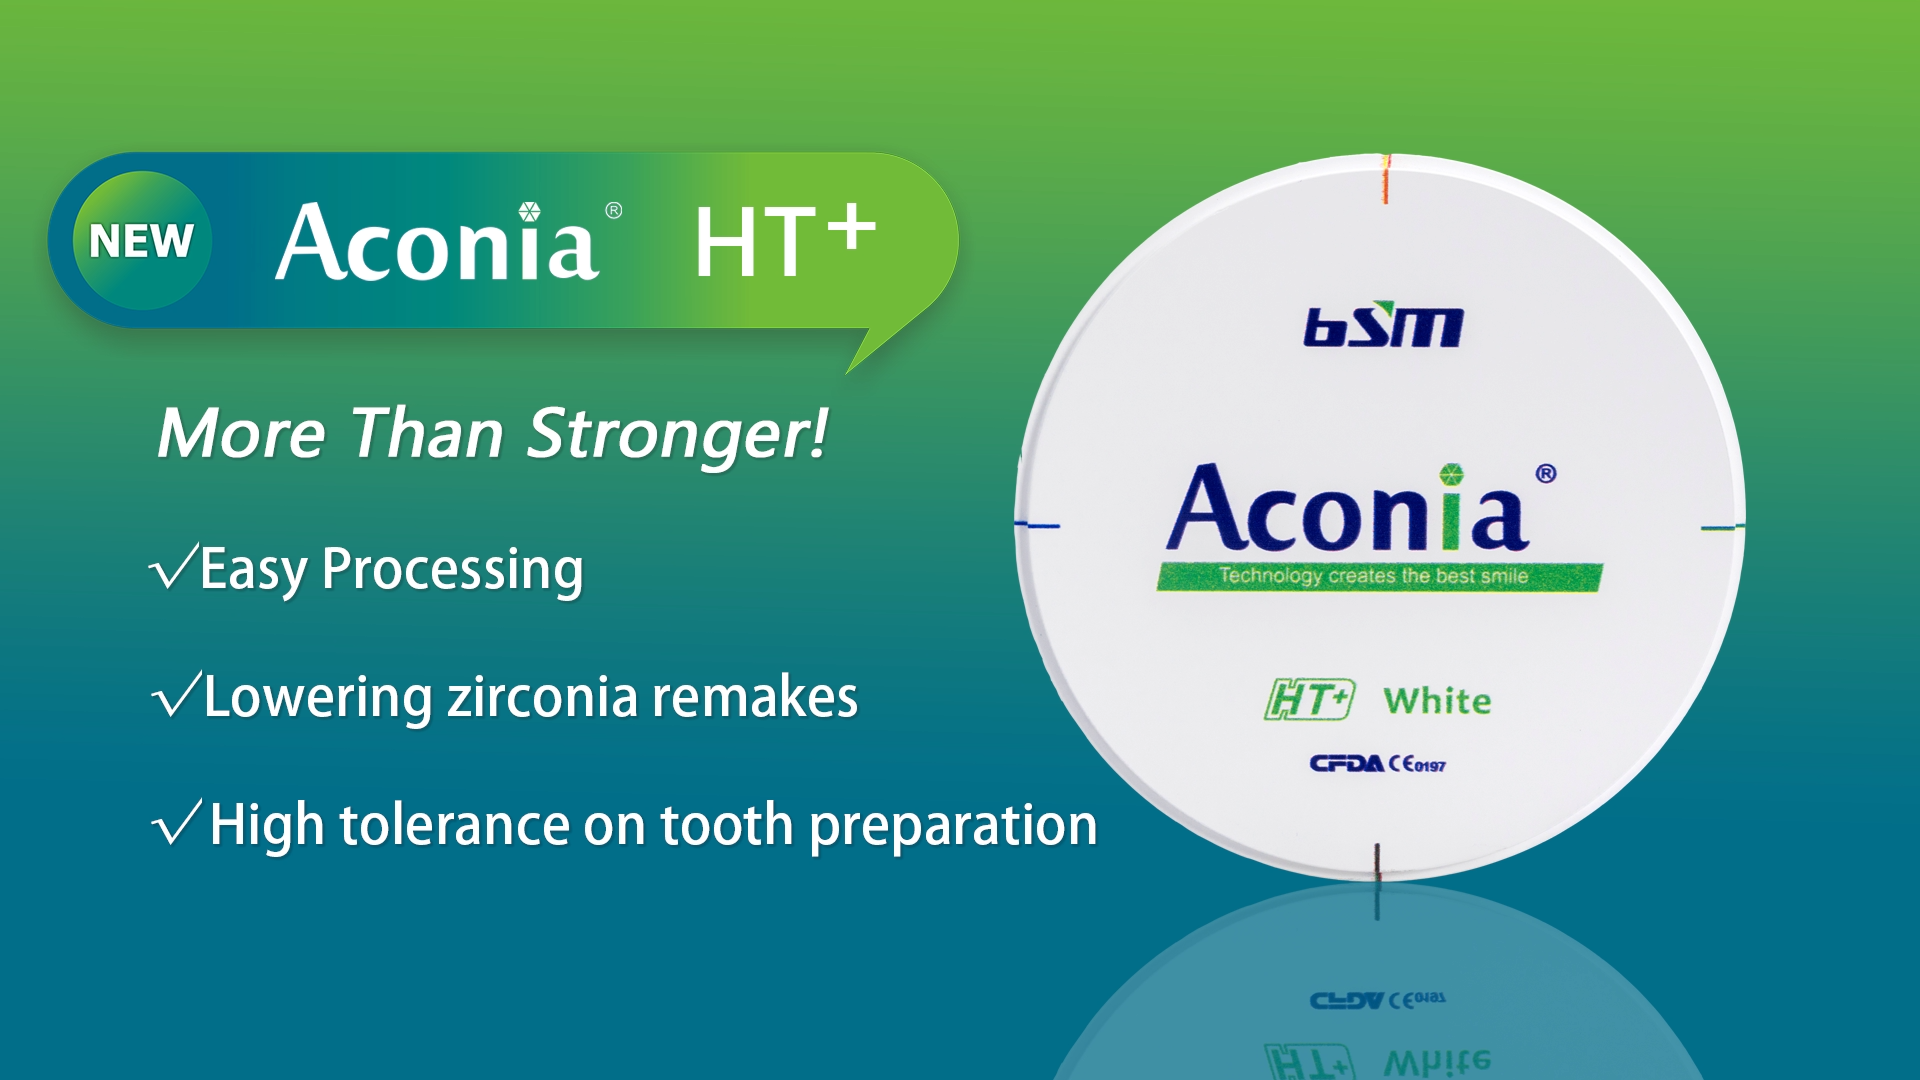 What makes Aconia HT+ superior than other zirconia blanks?